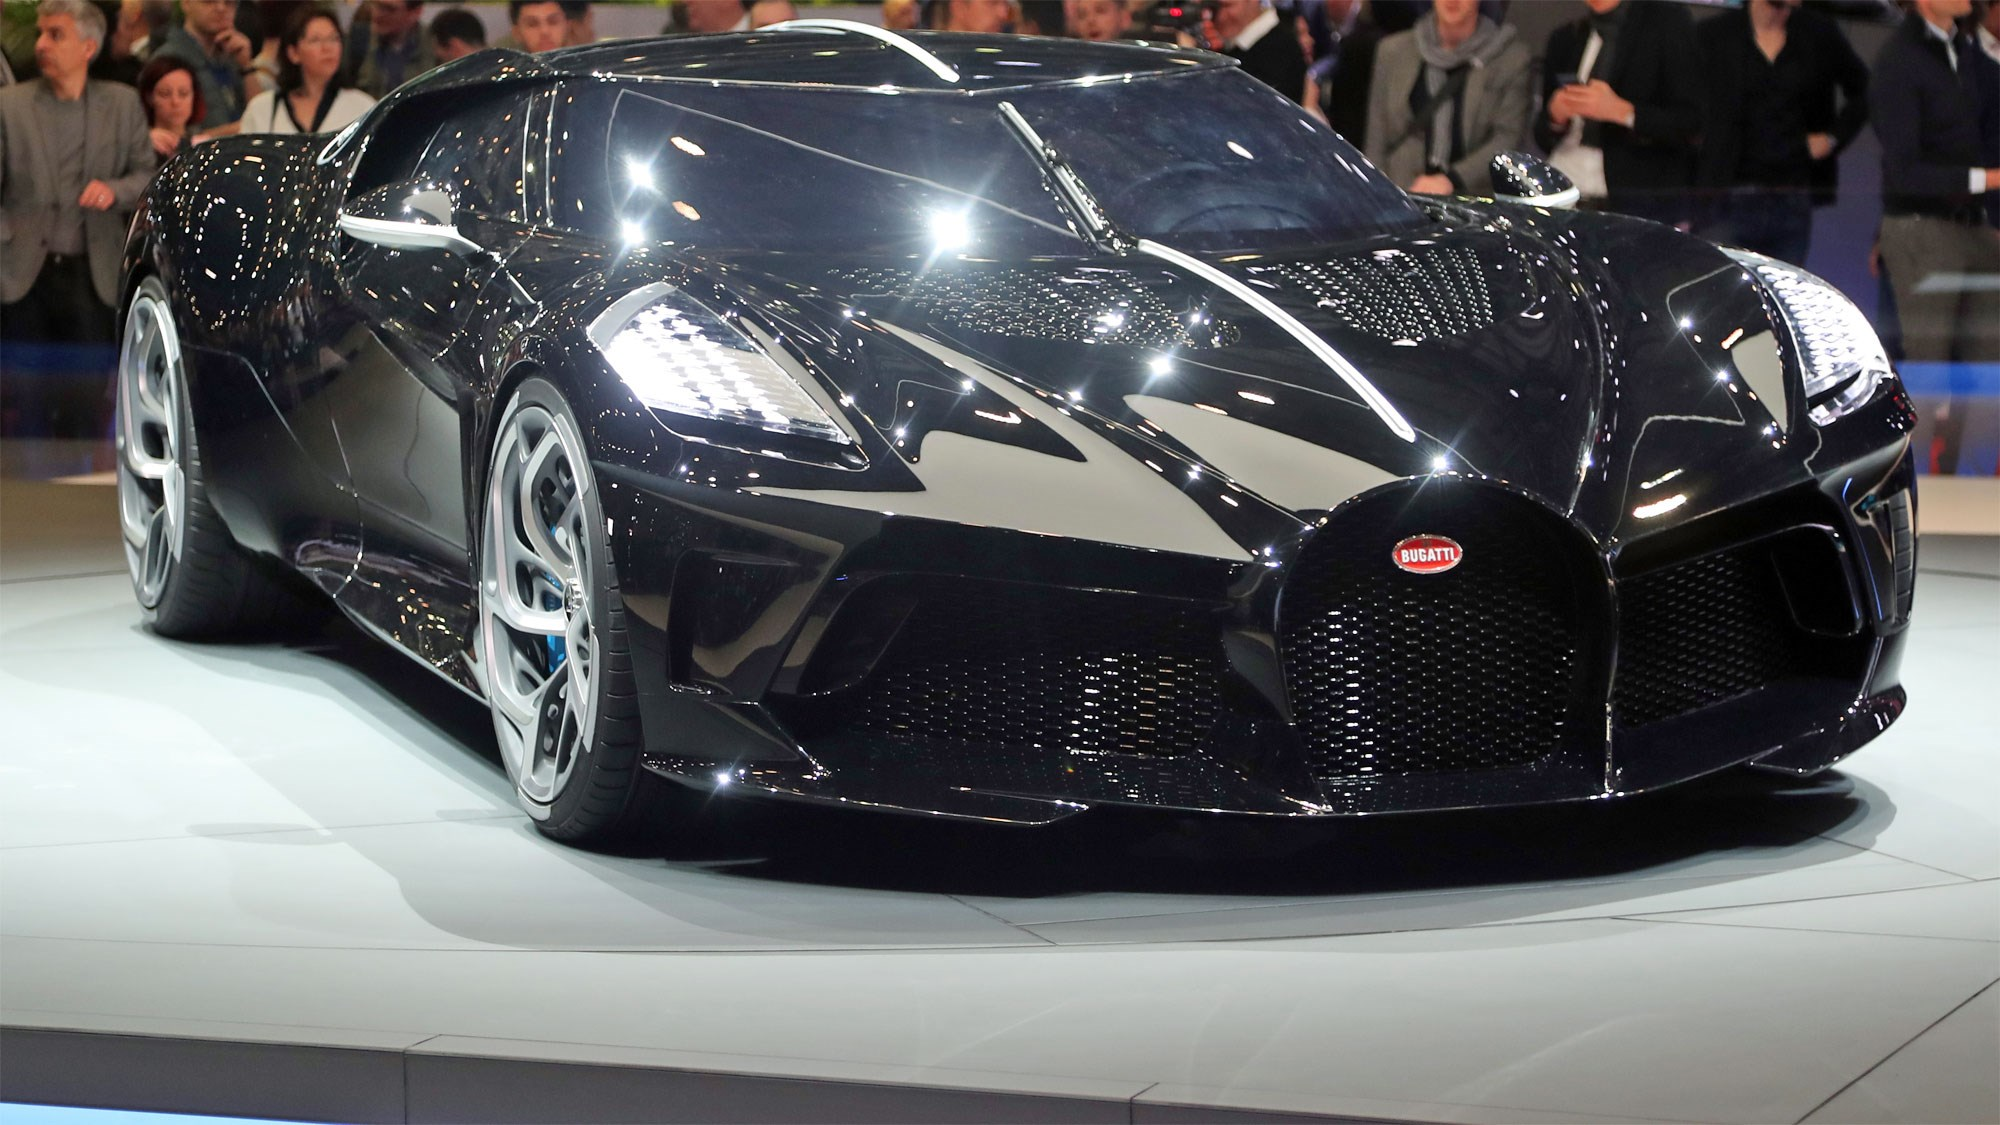 Bugatti Cars Expensive Cars: What Is The Most Expensive Car In The World Right Now?